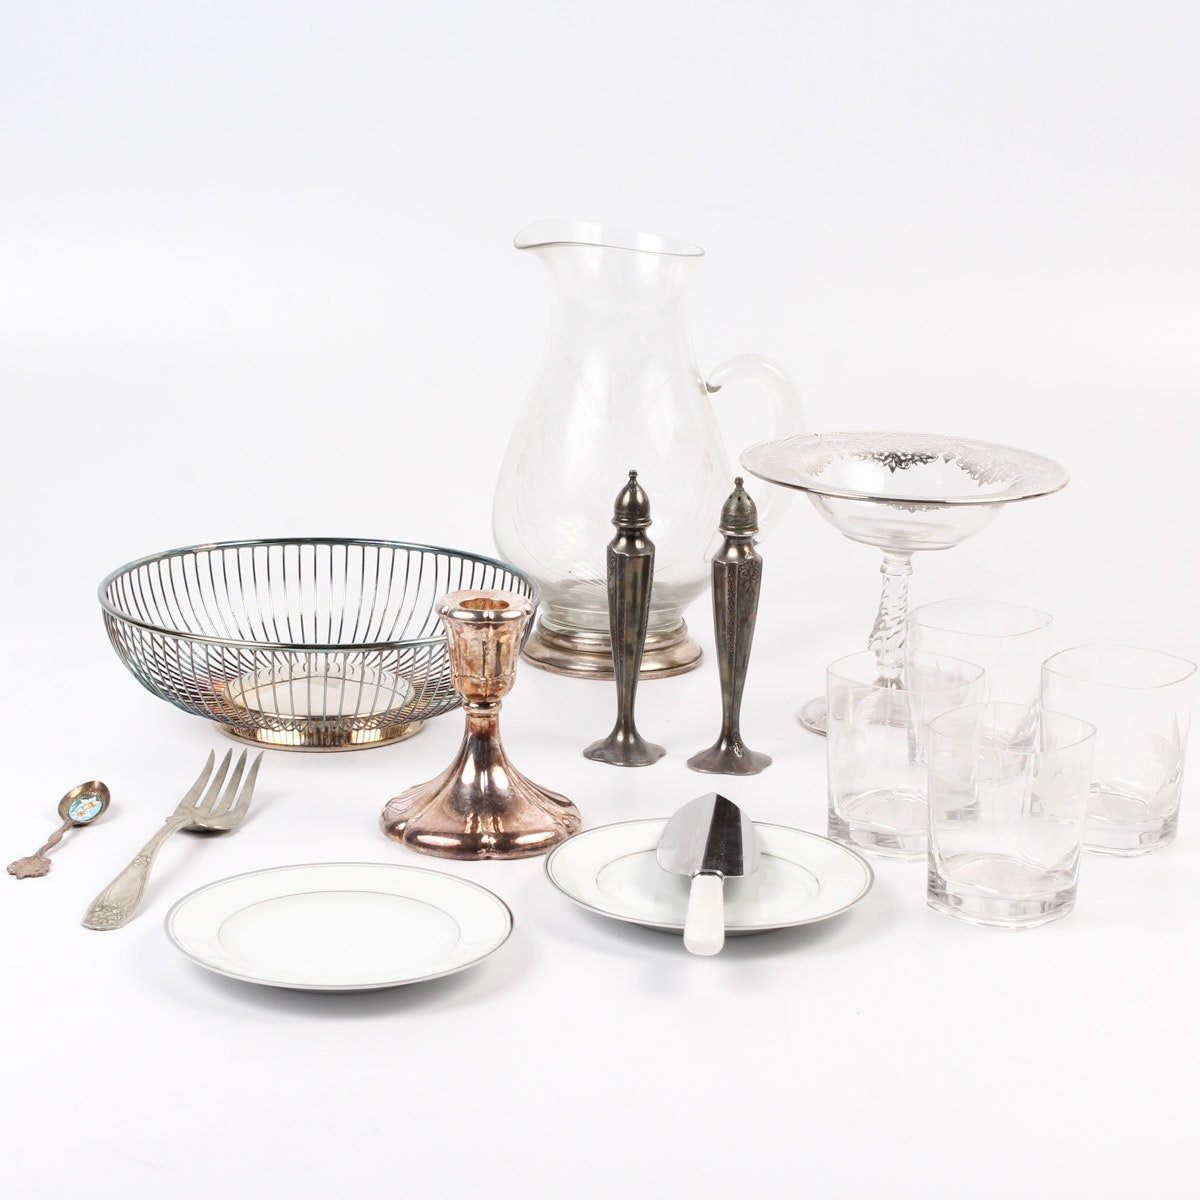 Glass and Silver Plate Tabletop Collection